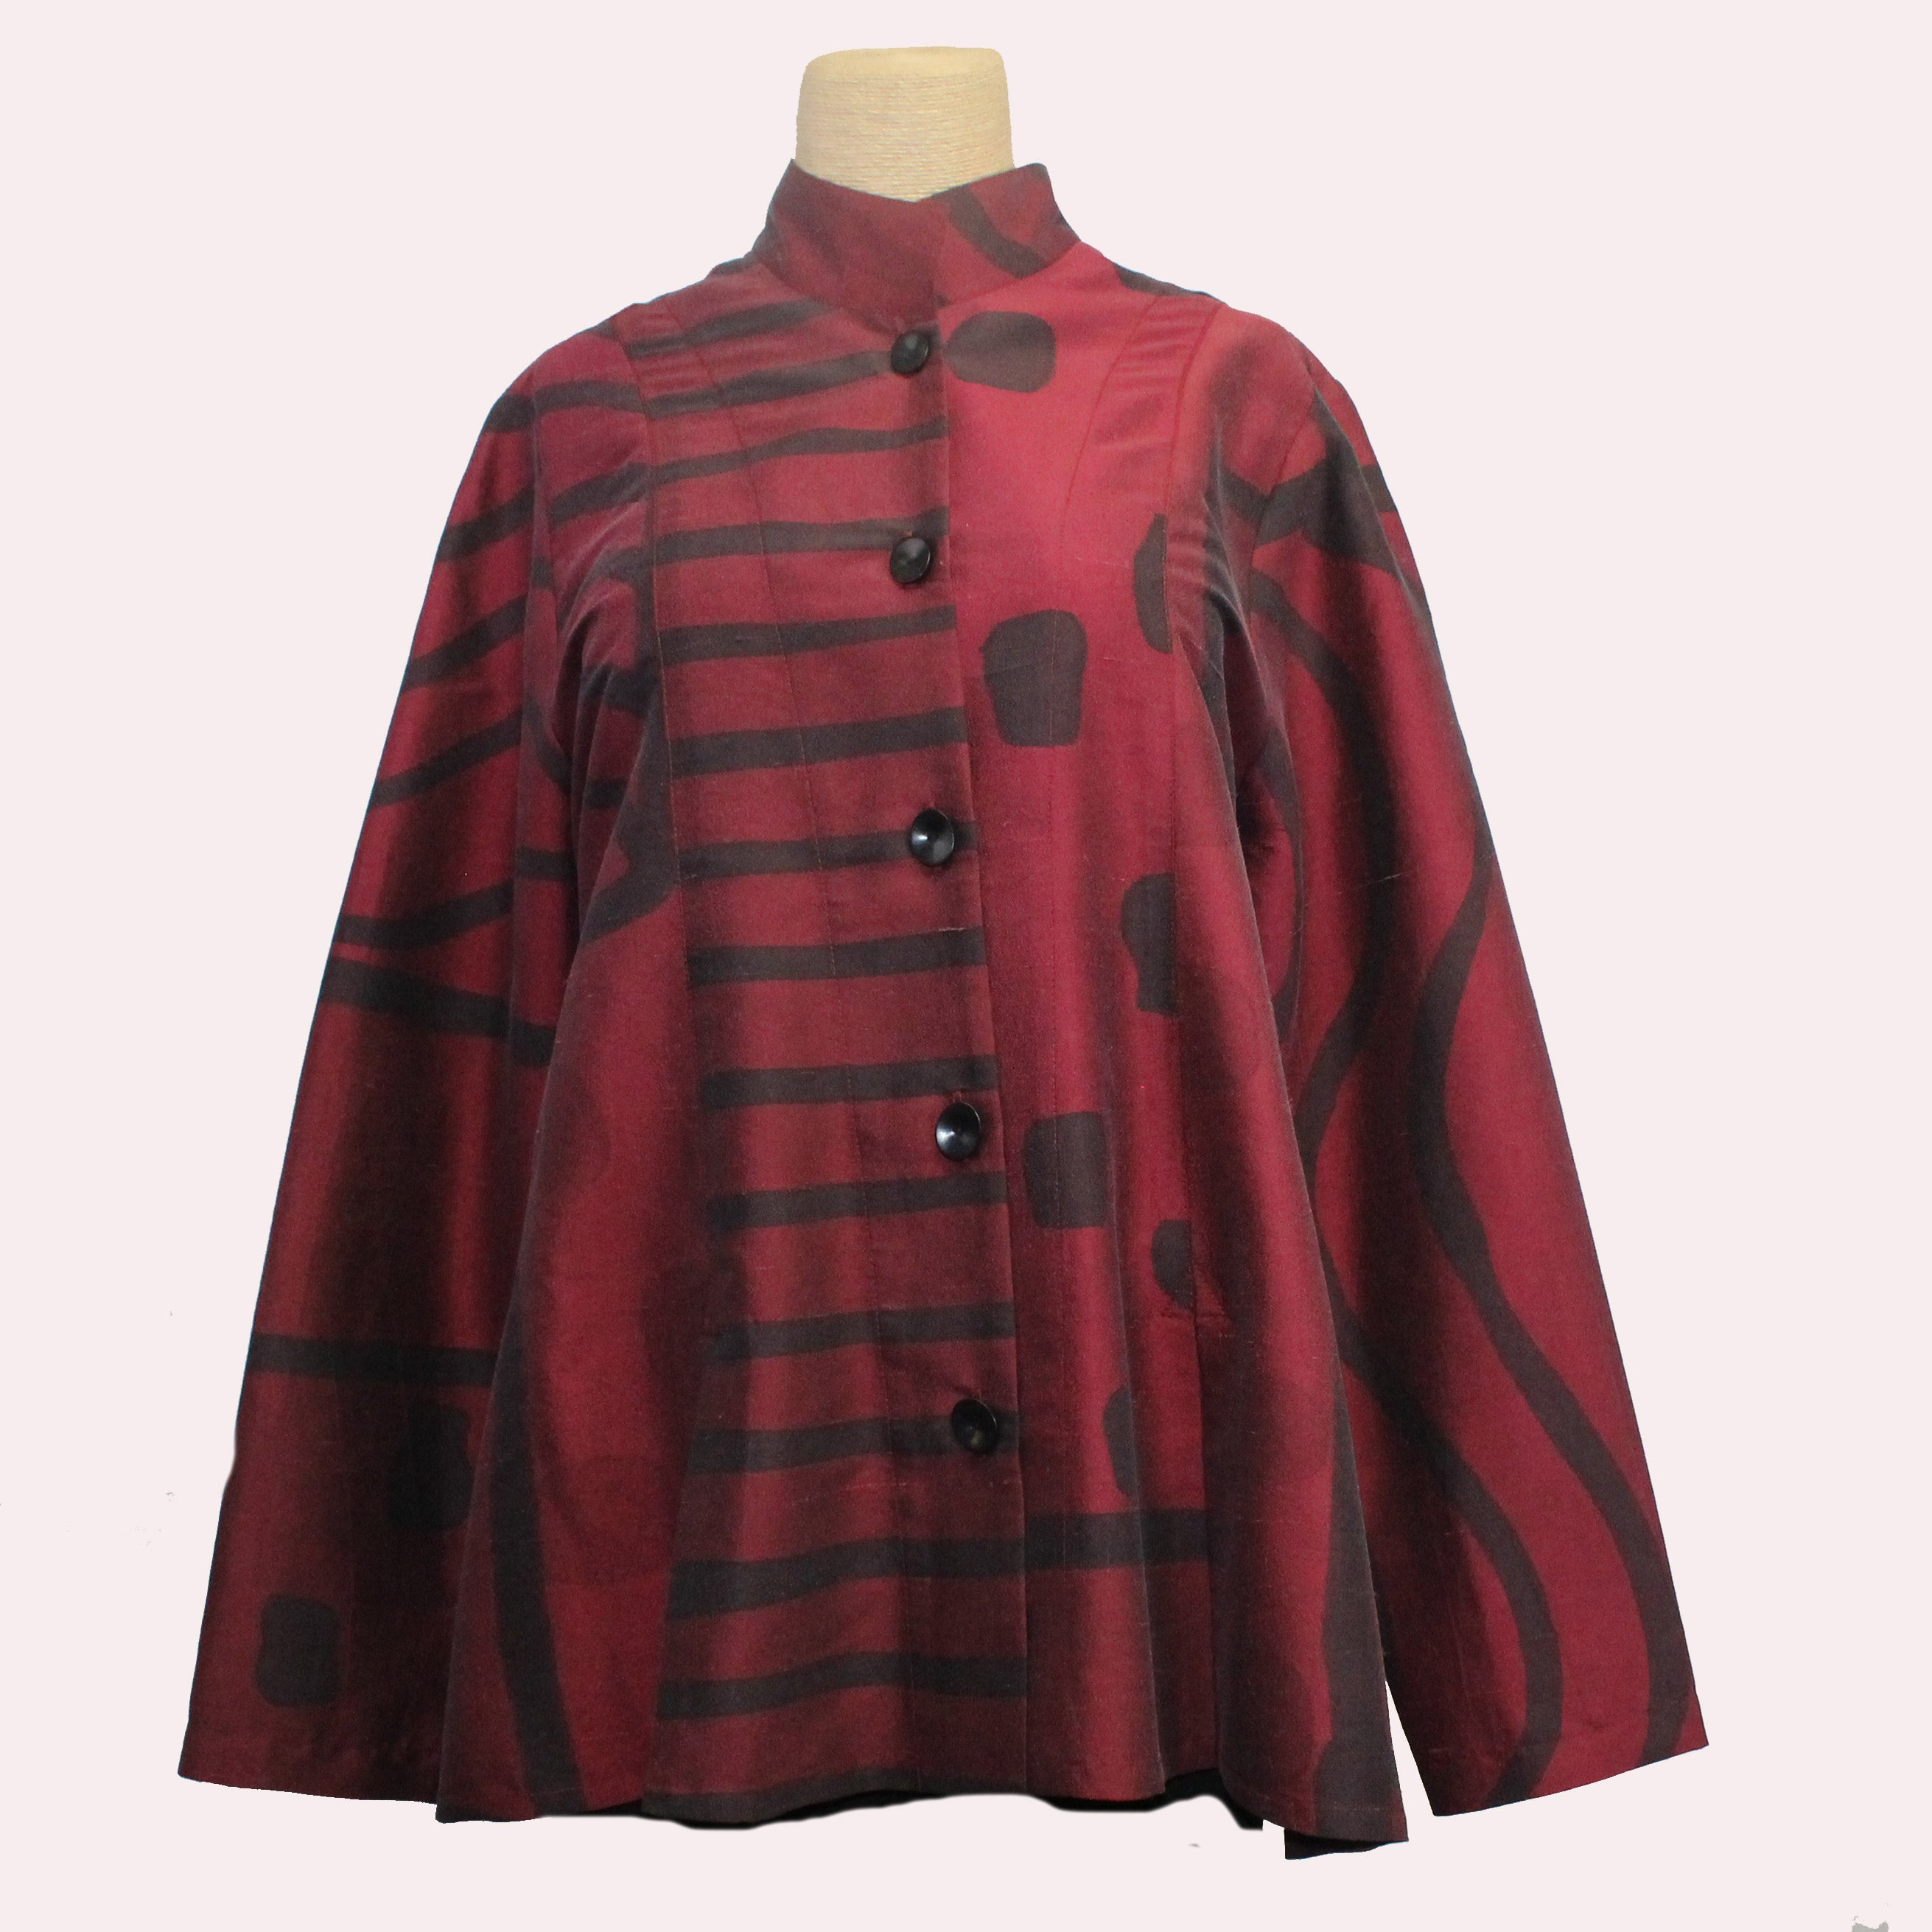 Kay Chapman Shirt, Burgundy/Wine/Black, S/M